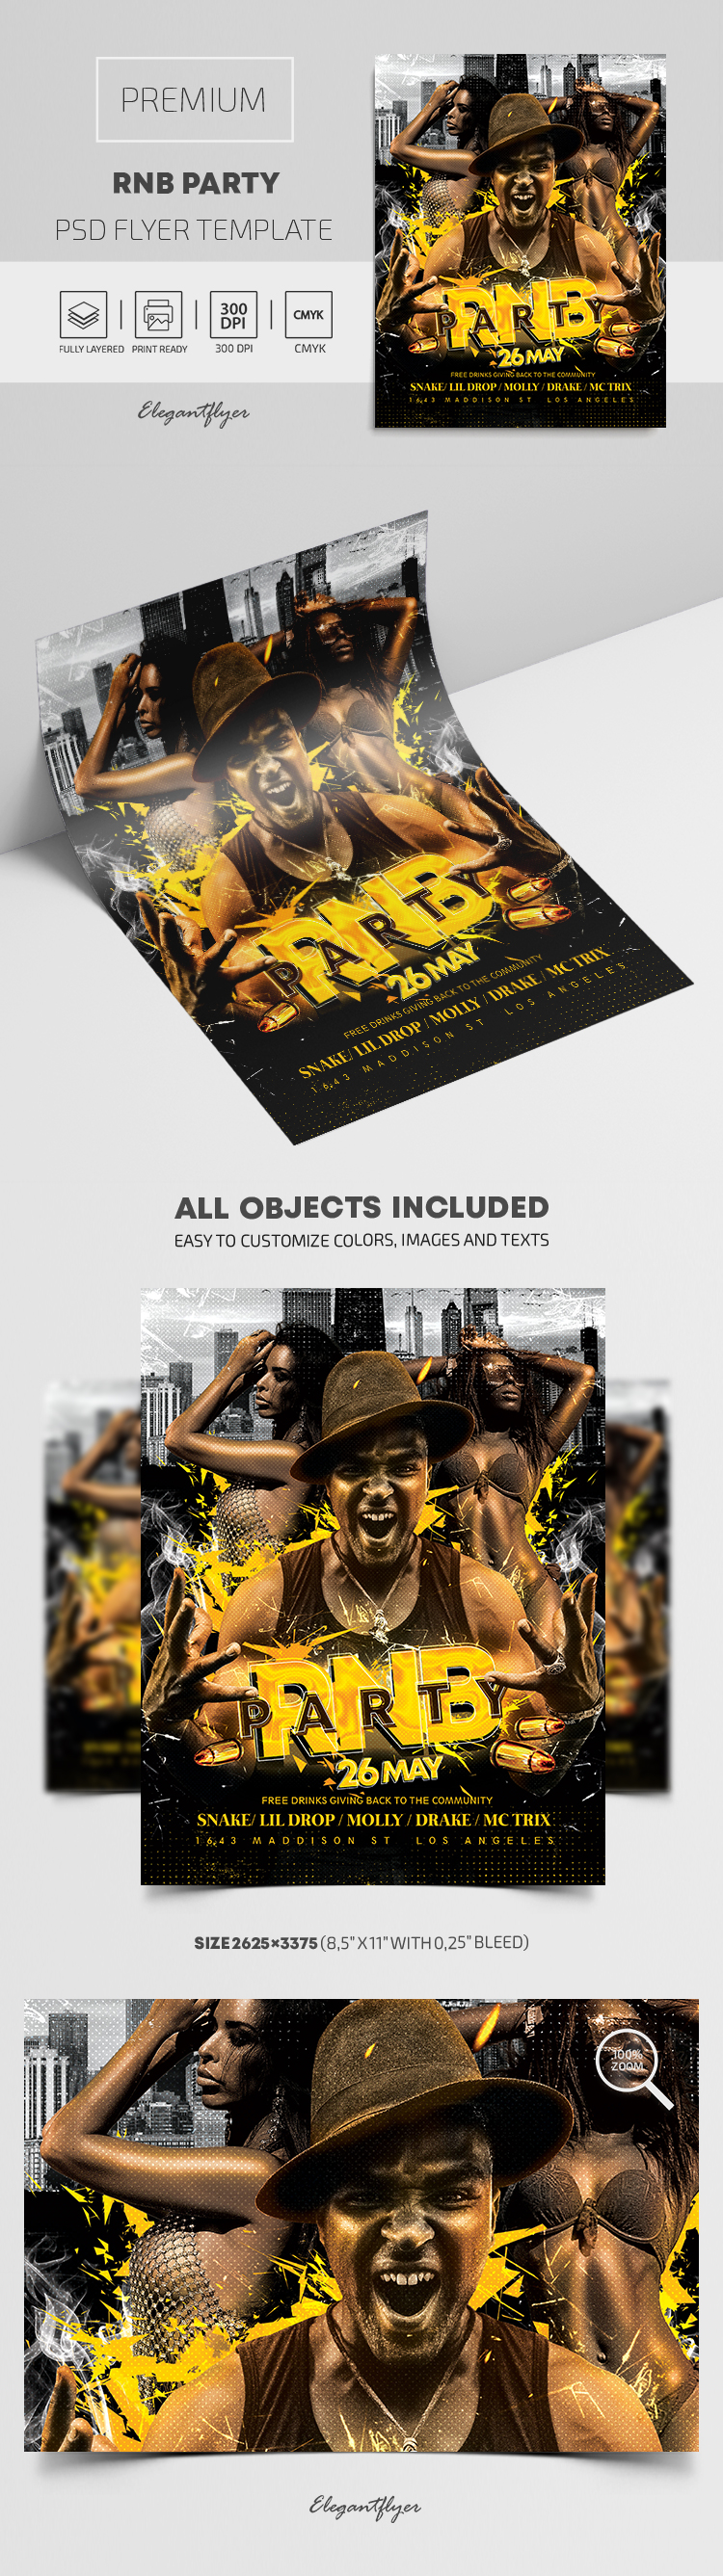 RnB Party – Premium PSD Flyer Template